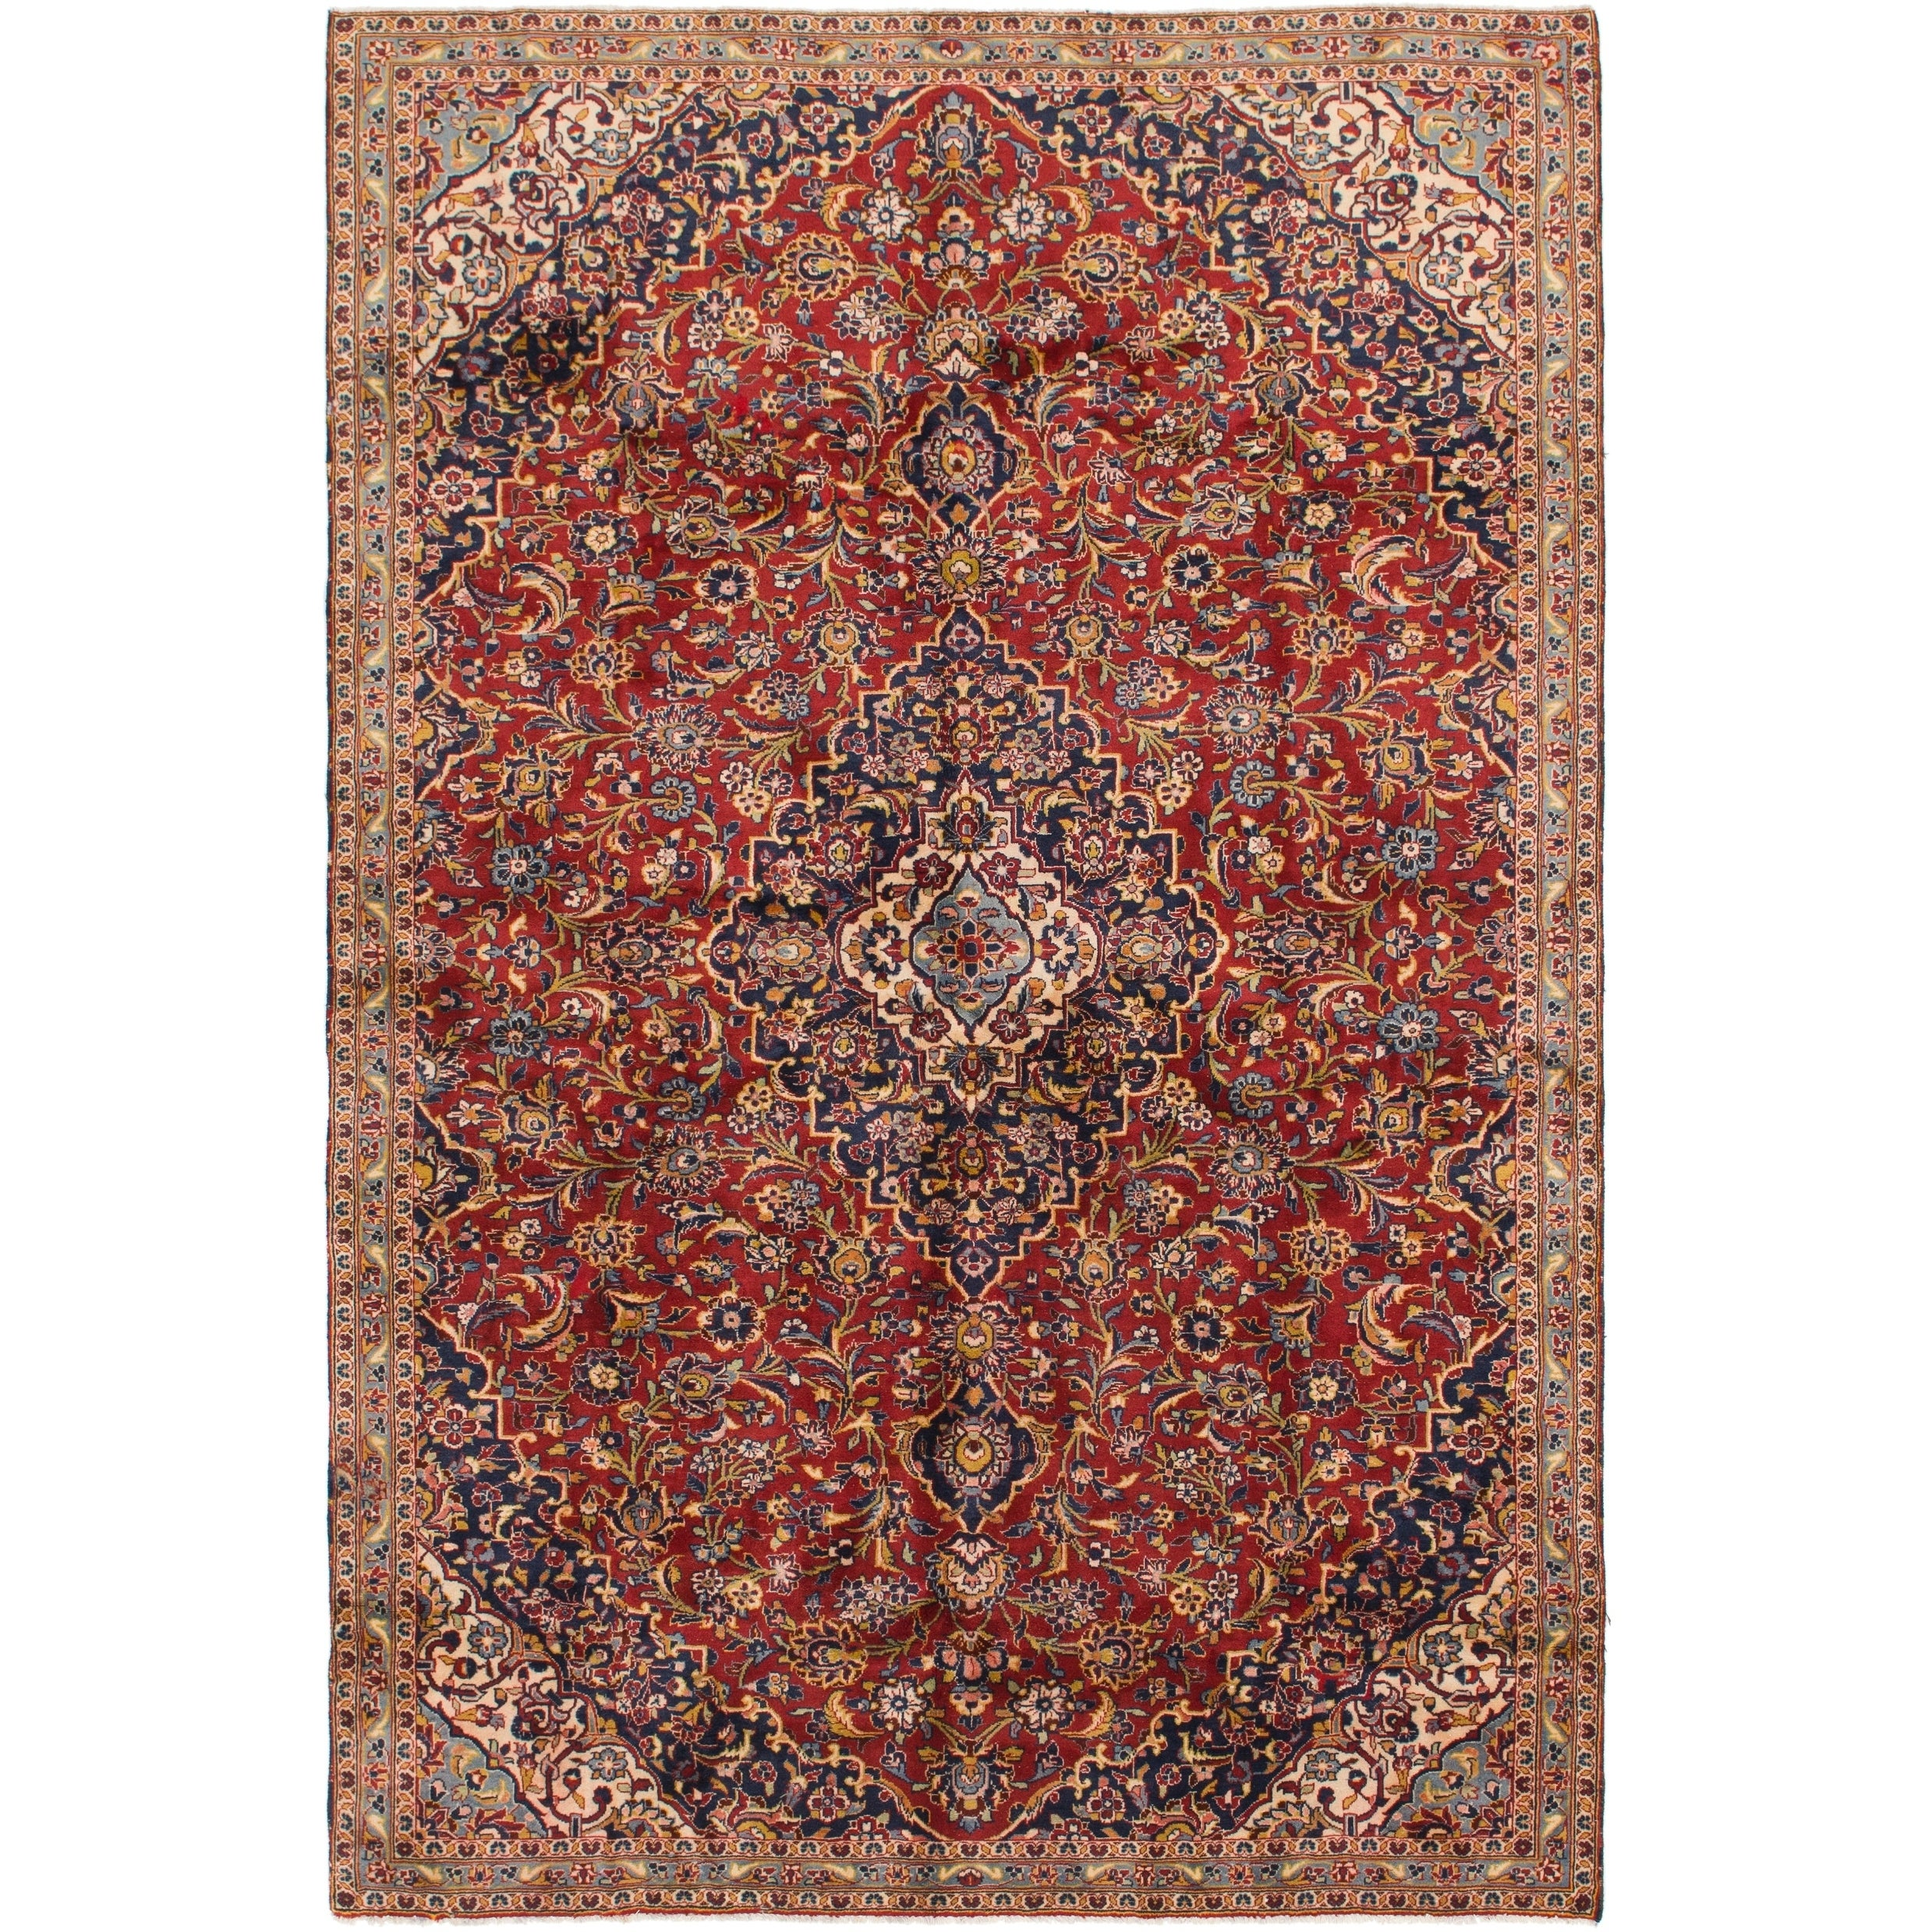 Hand Knotted Kashan Semi Antique Wool Area Rug - 7 2 x 11 (Red - 7 2 x 11)